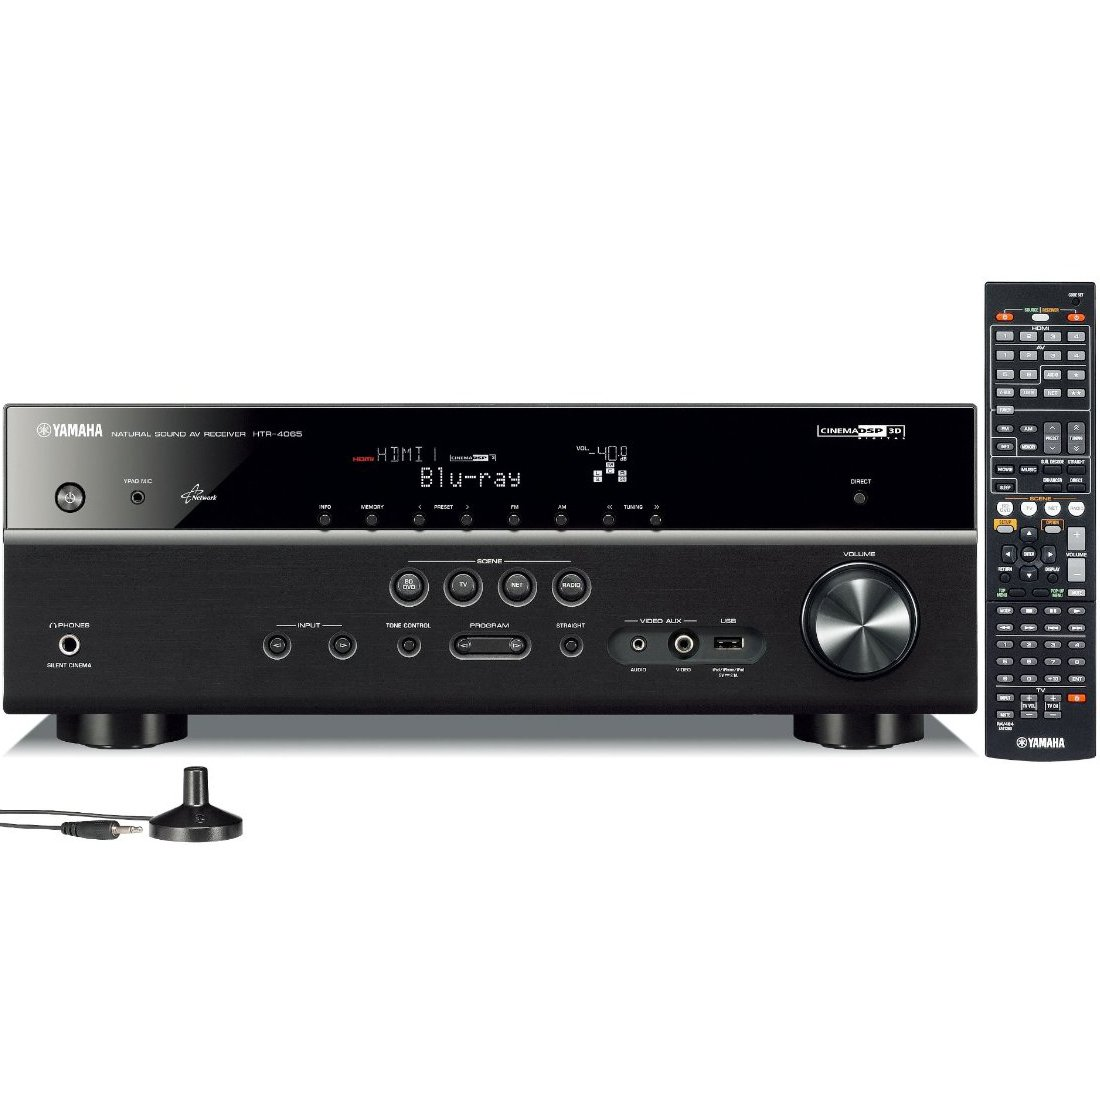 Yamaha HTR-4065 Factory Refurbished 5.1-Channel Network AV Receiver with Airplay $199.95